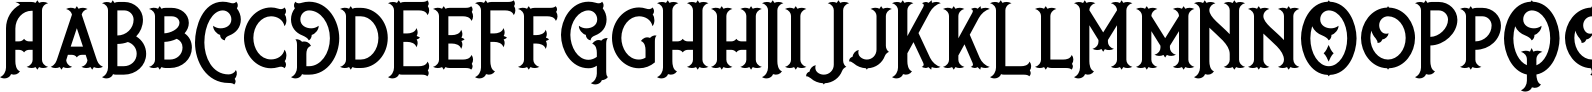 Nufced Typeface